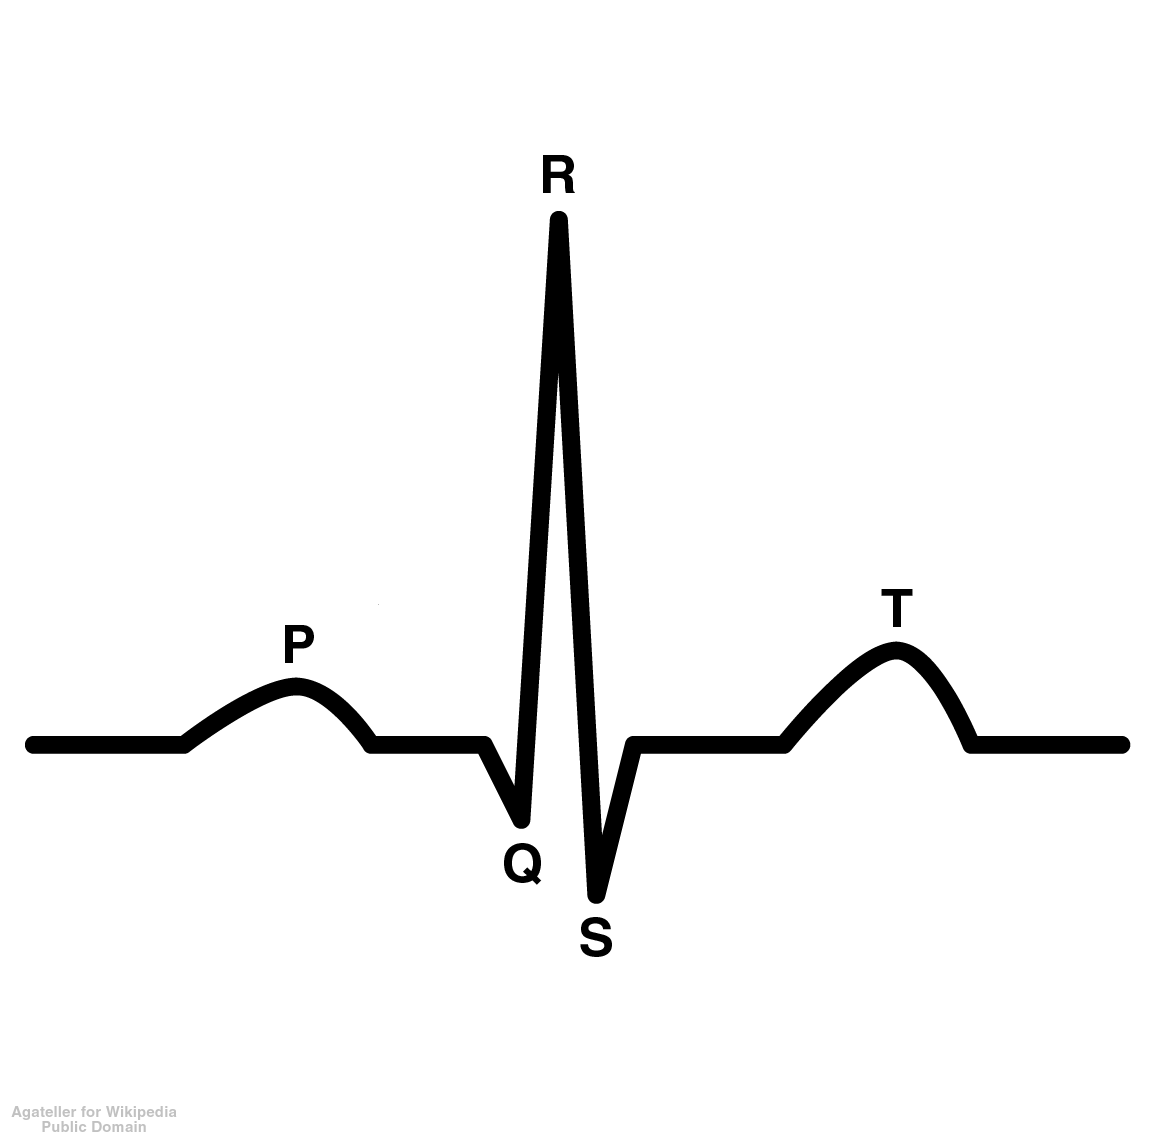 Arrhythmia (Irregular Heartbeat) Treatments: EKG/ECG